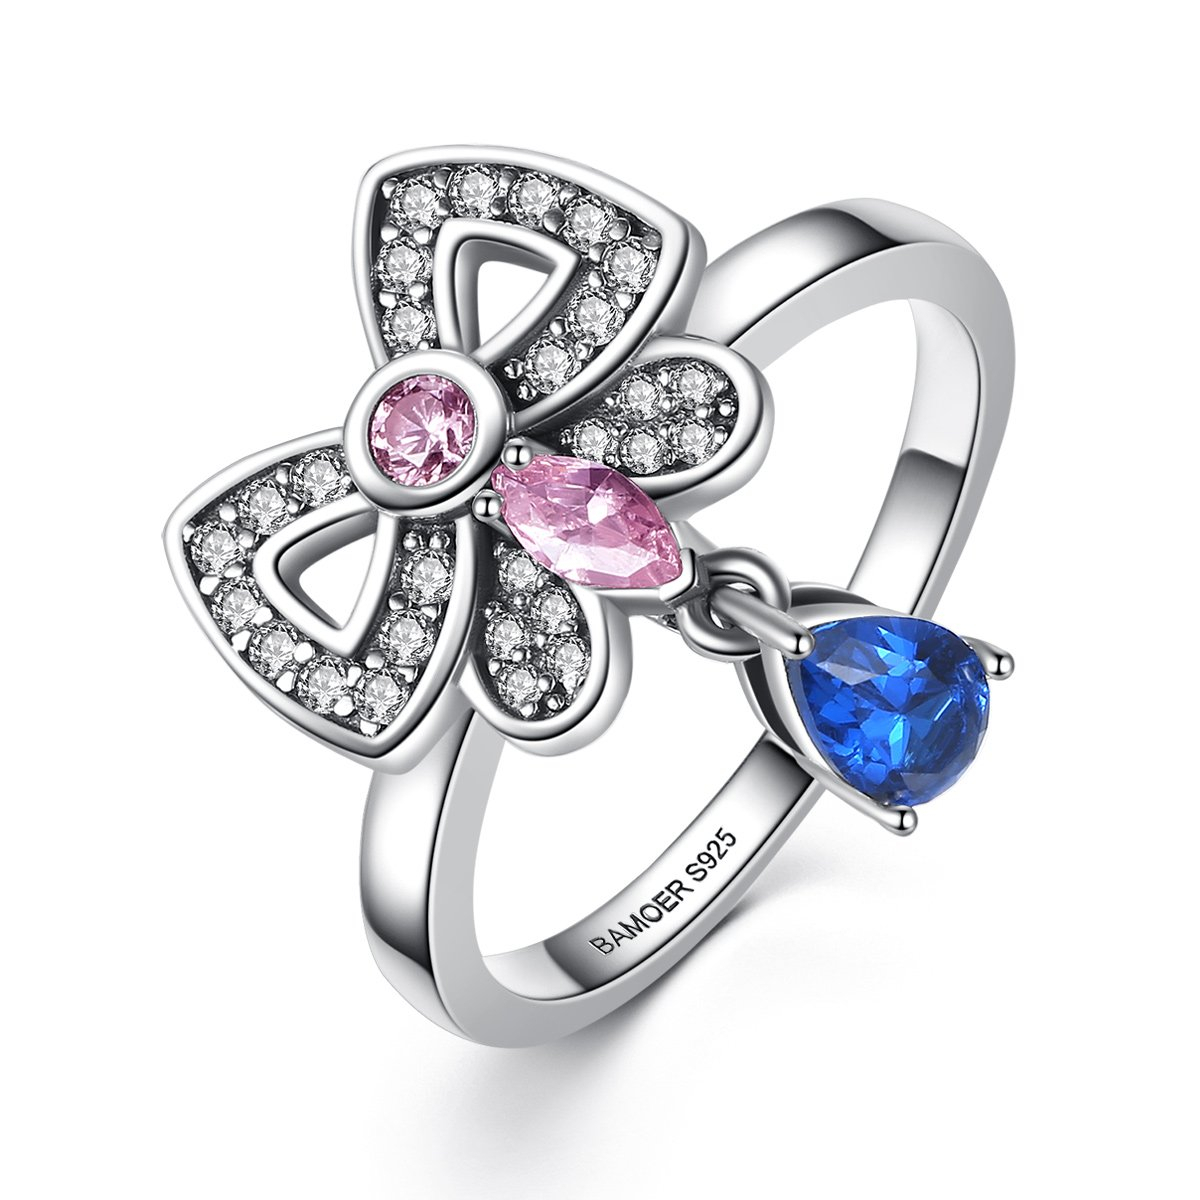 Charming Sparkling Pink & Blue Butterfly Ring Sale Clearance Regarding 2017 Sparkling Butterfly Rings (View 16 of 25)